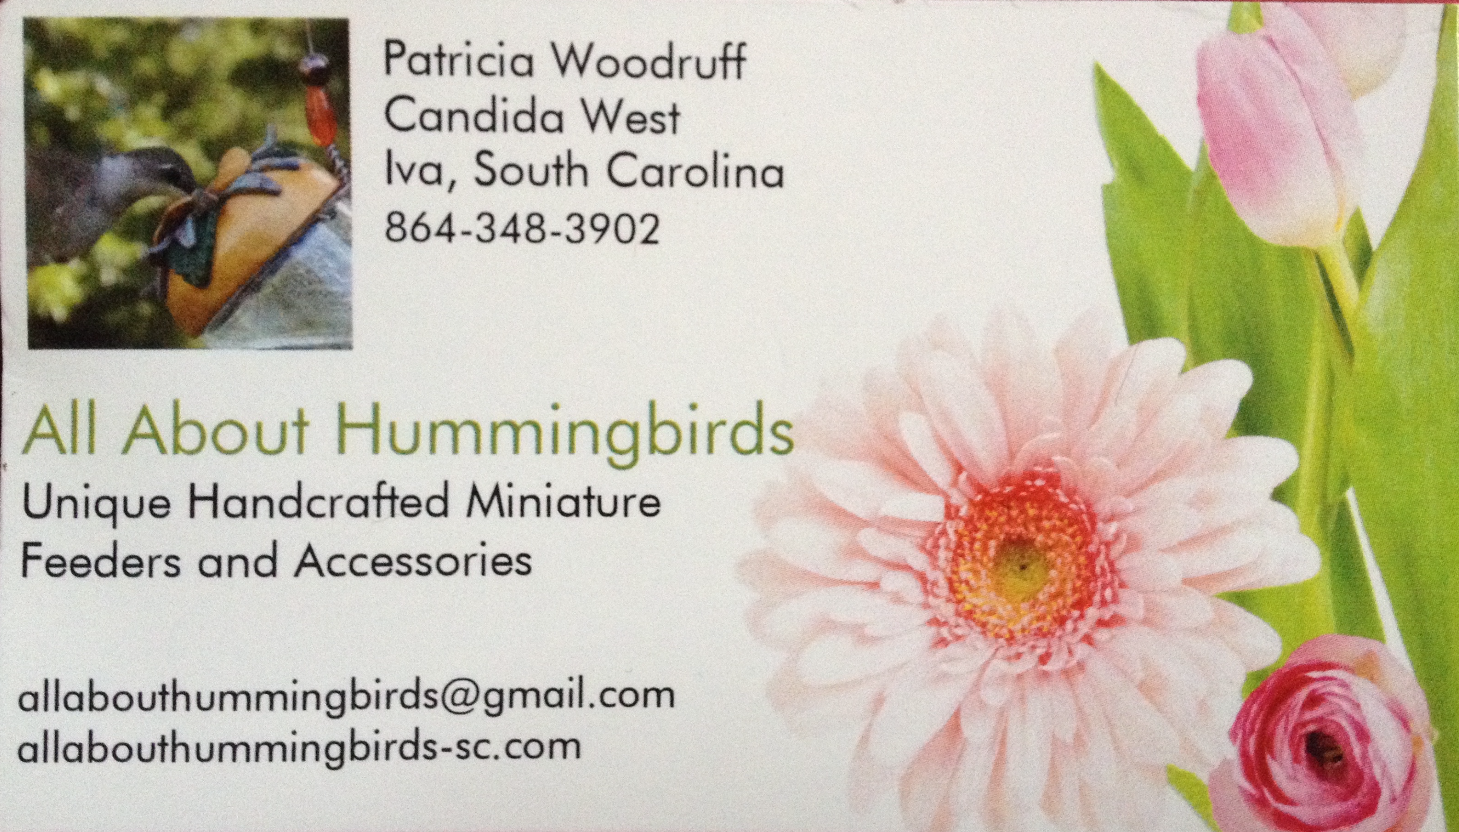 All About Hummingbirds logo_edited